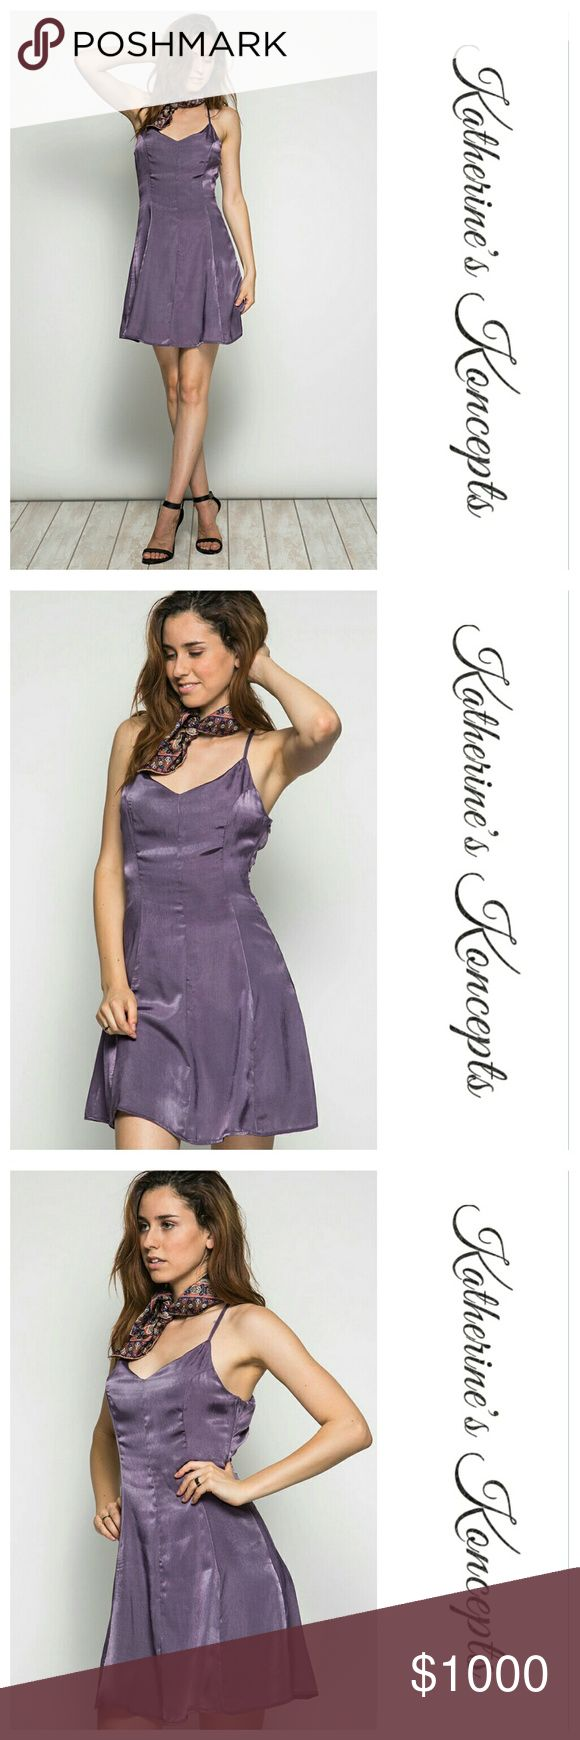 Coming soon!! Satin Strappy A-line Dress Open Back New boutique dusty purple, satin, open back, A-line  dress!!! Coming soon! This beautiful dress works for every occasion and season, dates, girls night, or family fun. 70% cotton 30% Poly. Currently only available in purple. These will be $20 each! Save even more by bundling. ❤The item you see is the exact item you will receive. Shop with confidence! ♥Brand new boutique items ♥100% Smoke and pet free environment  ♥Same or next business day…